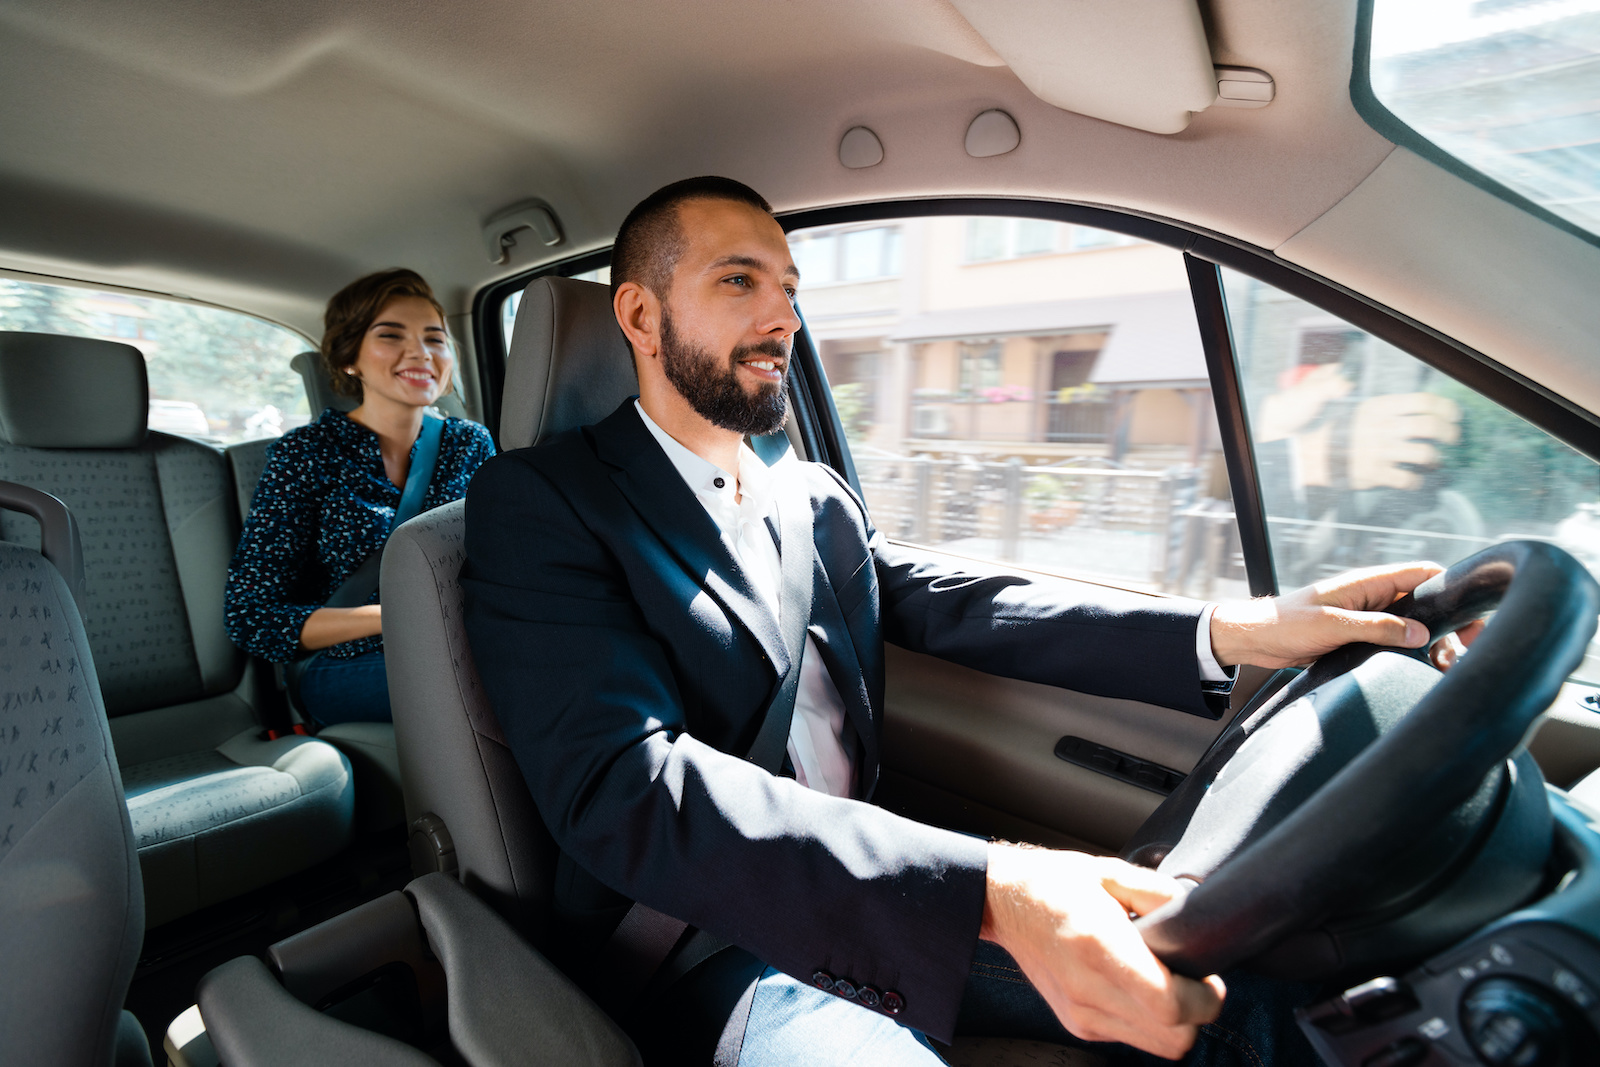 What to do when unemployed: A man works as an Uber driver